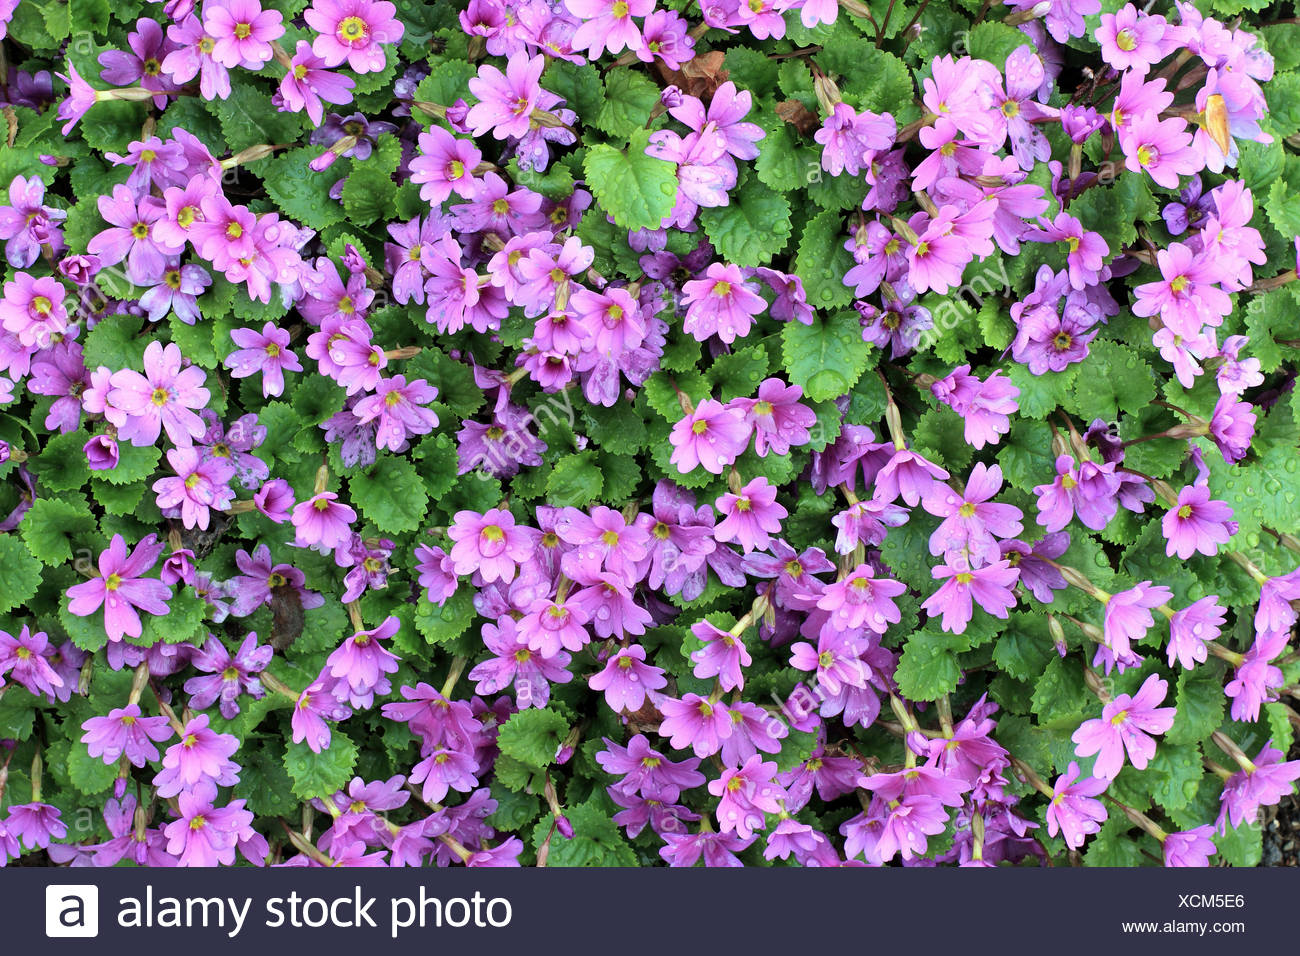 A Bunch Of Pink Flowers Growing On A Small Shrub Intense Colour